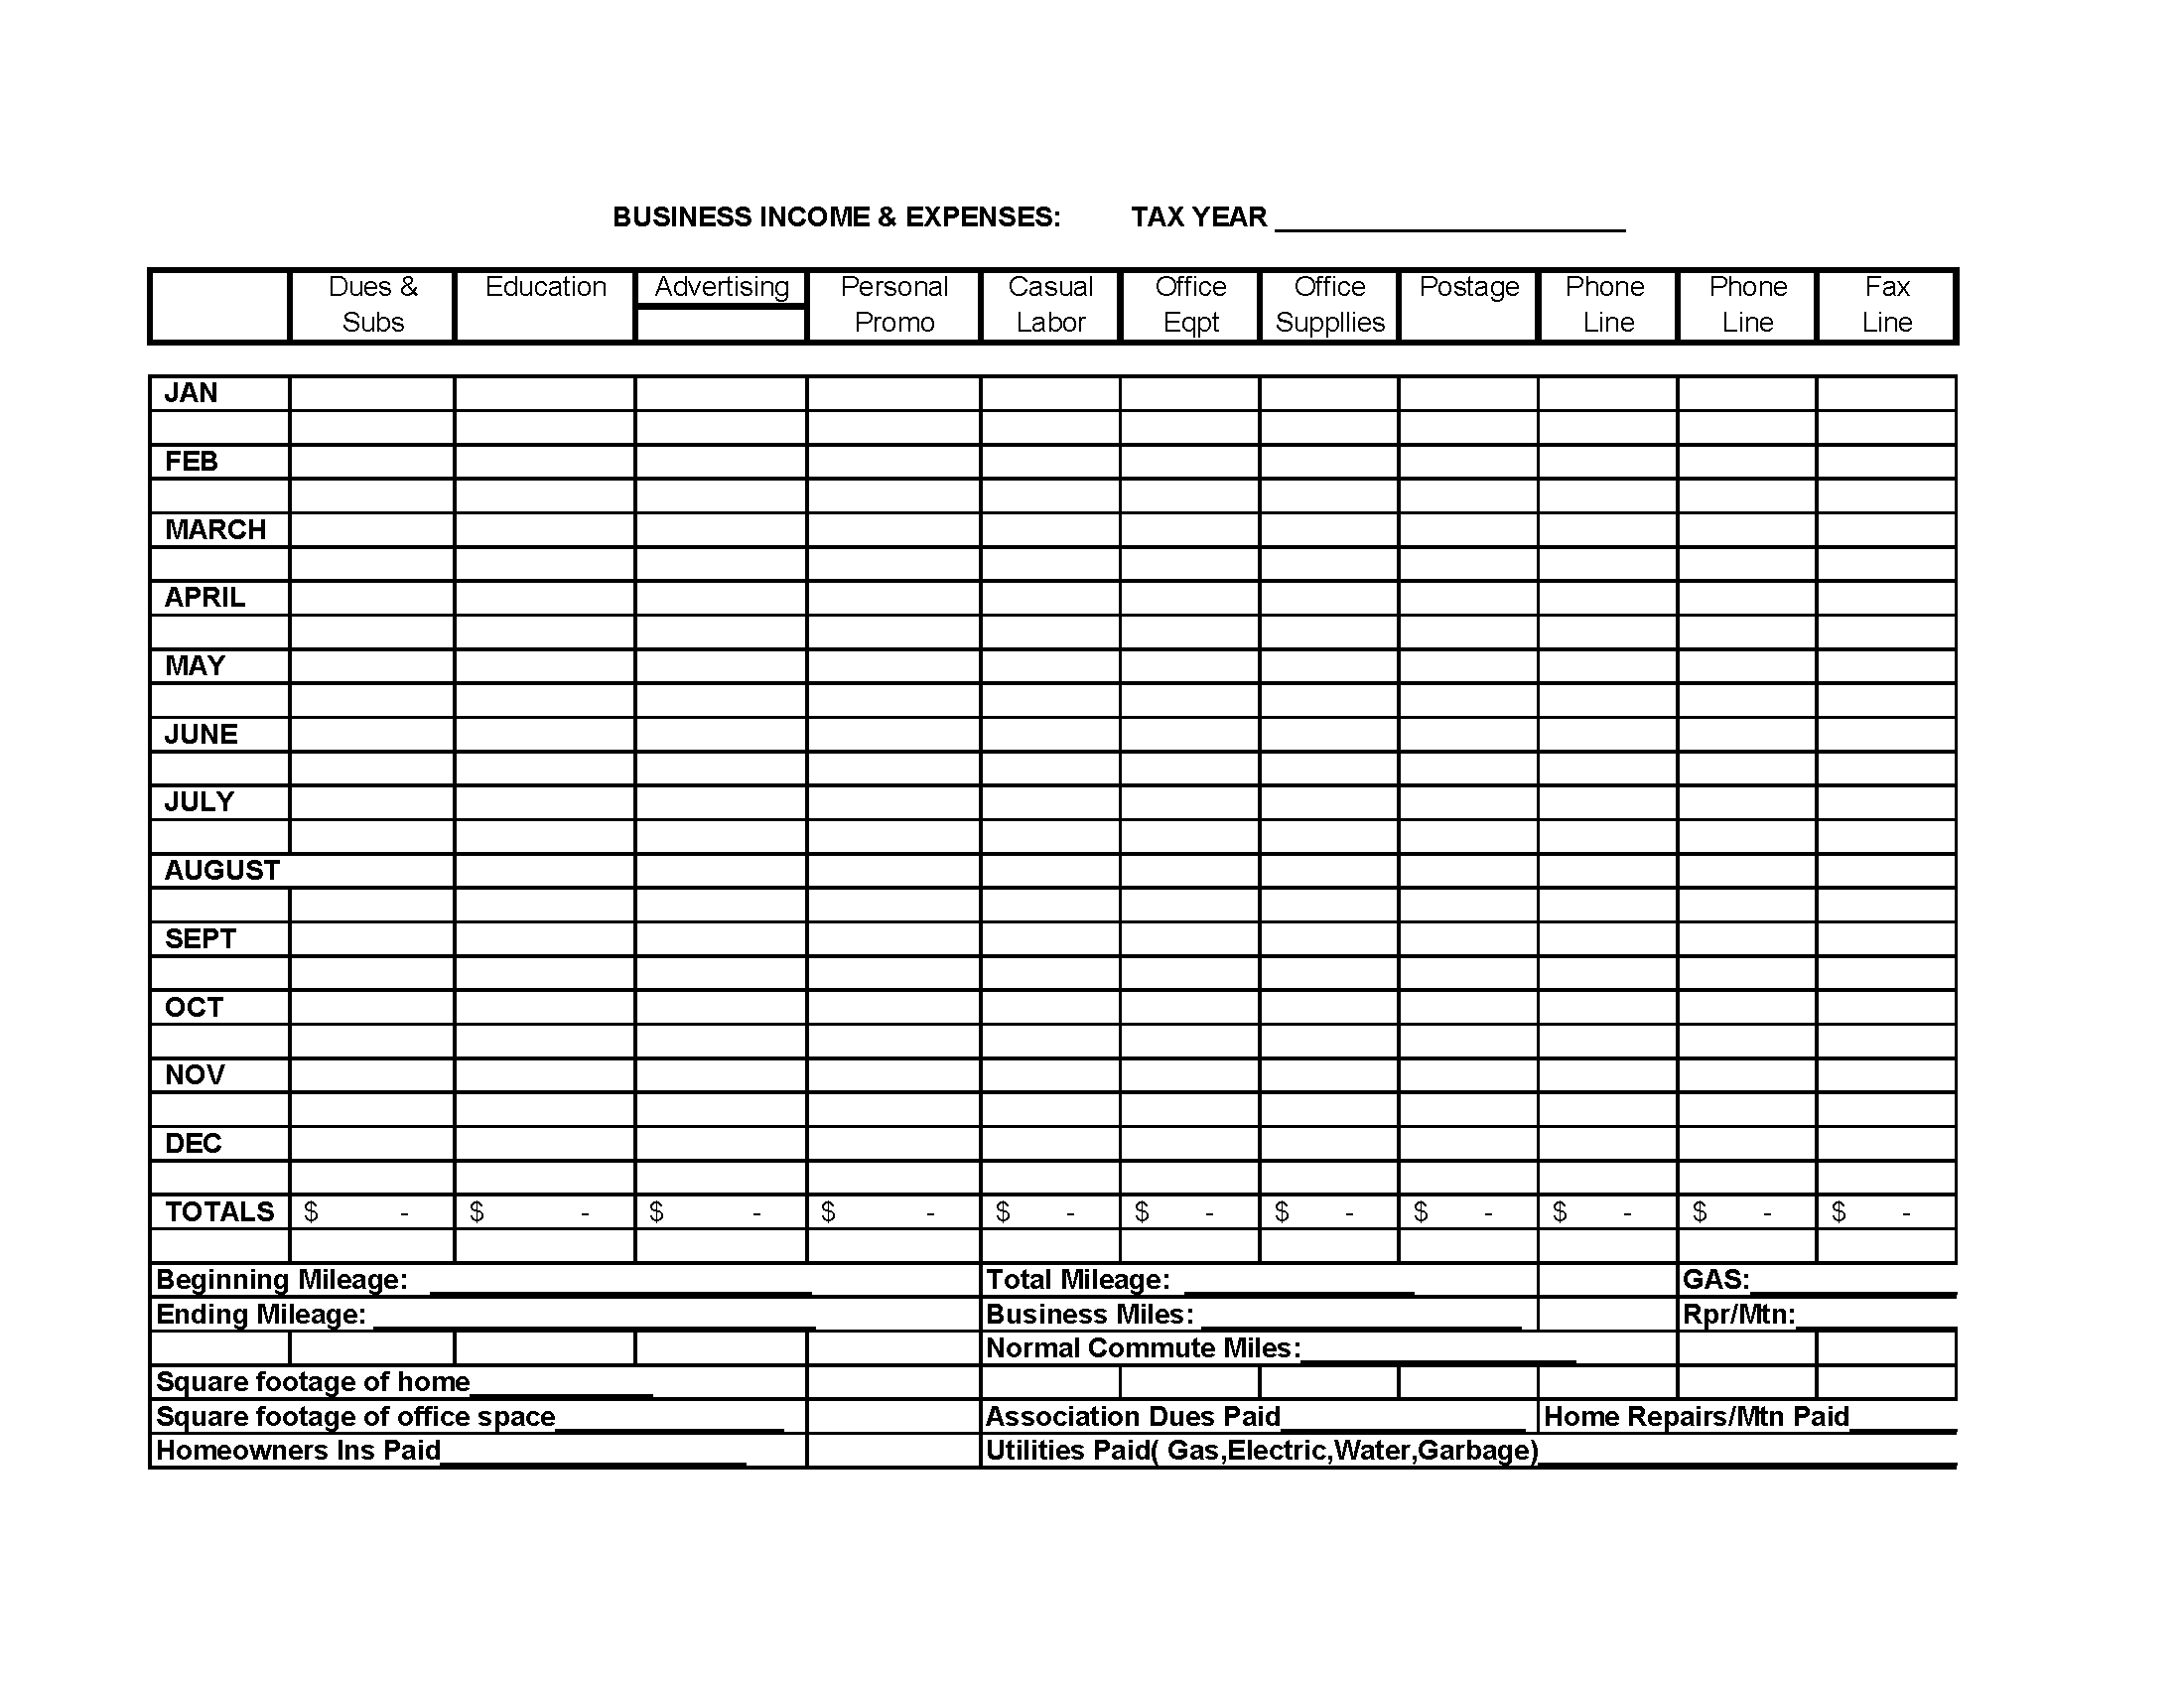 daily business expenses sheet in excel format free download